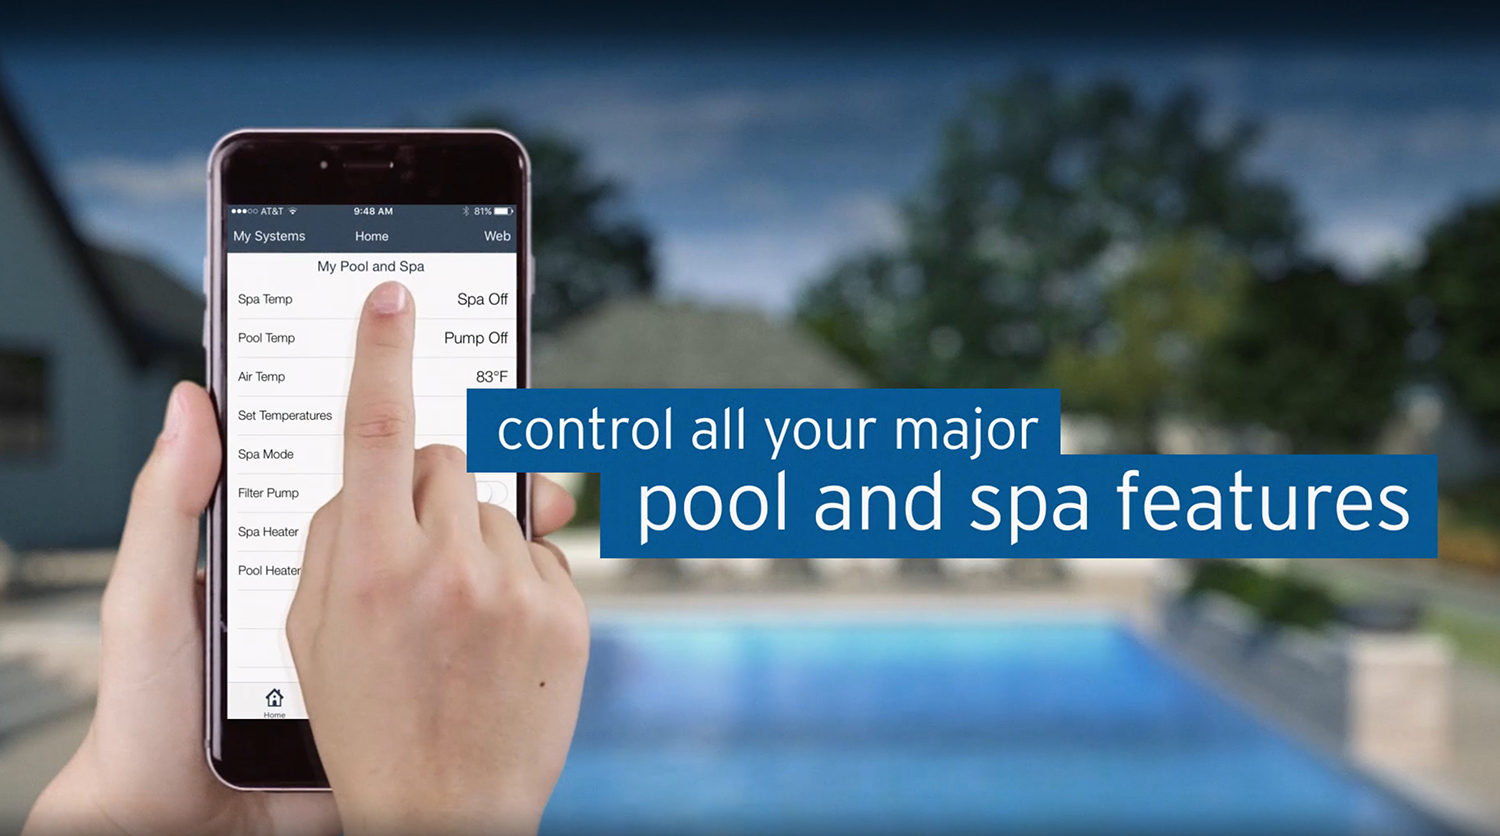 The iAquaLink Pool Control App lets you control your pool anytime, from anywhere